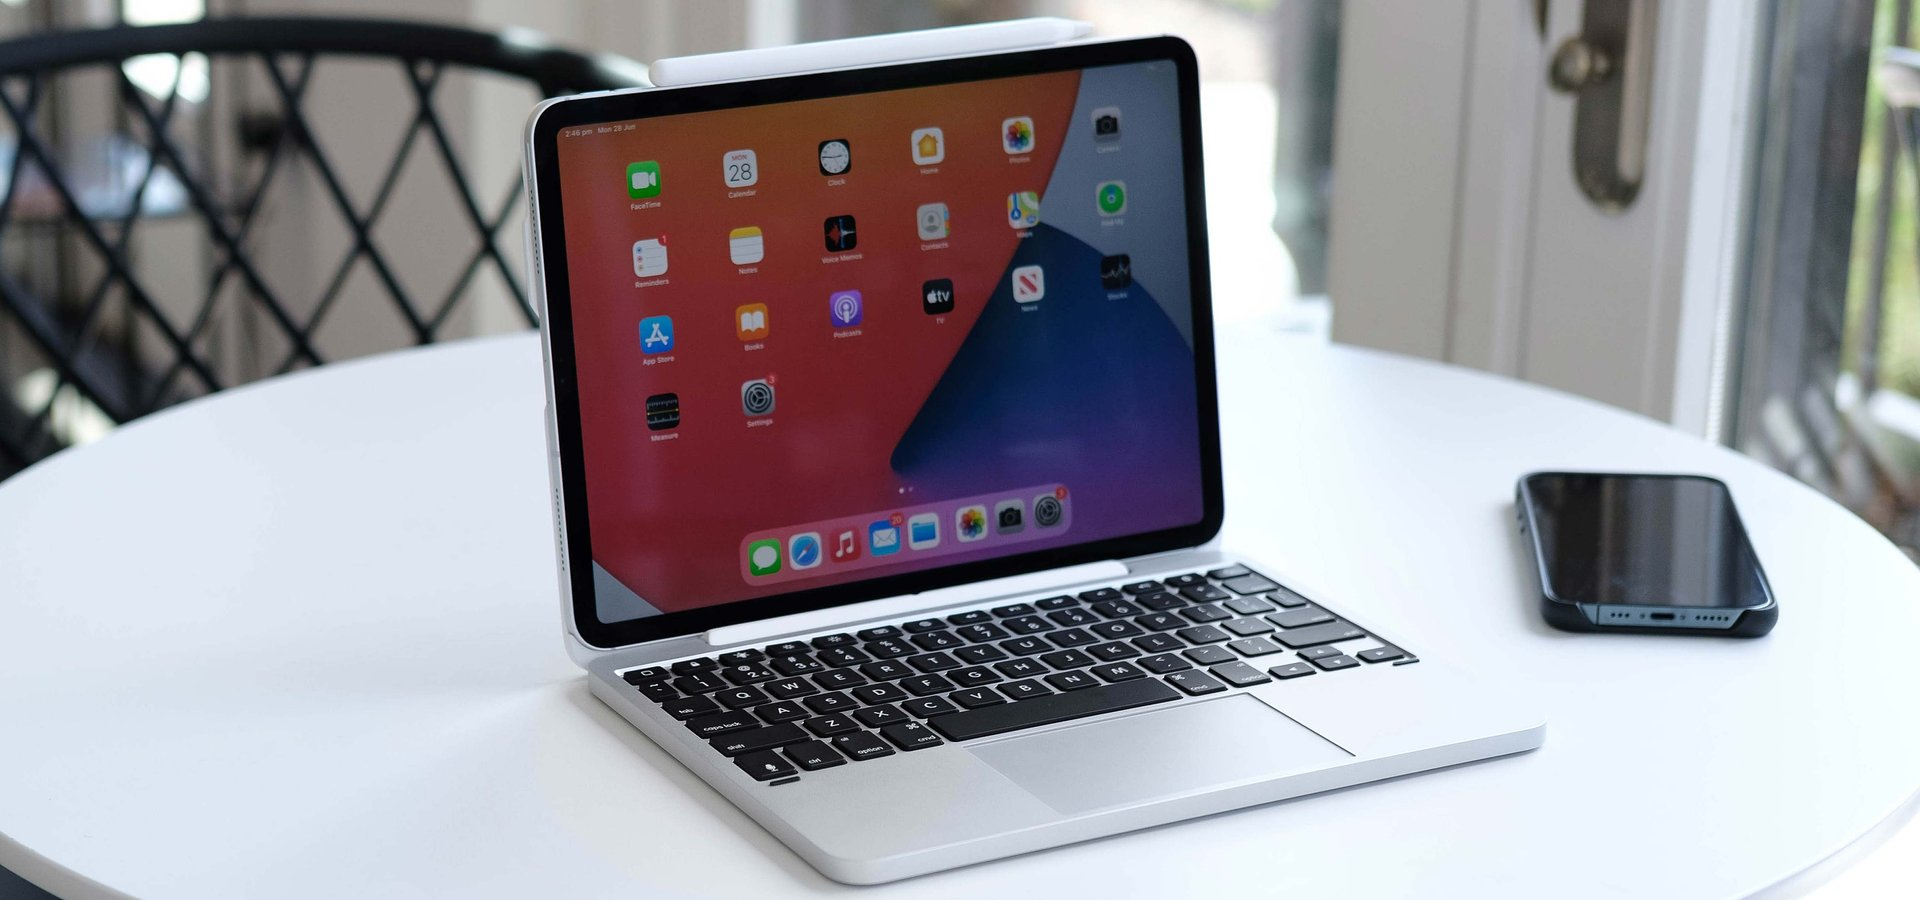 The Best Accessories for the iPad Pro - 2021